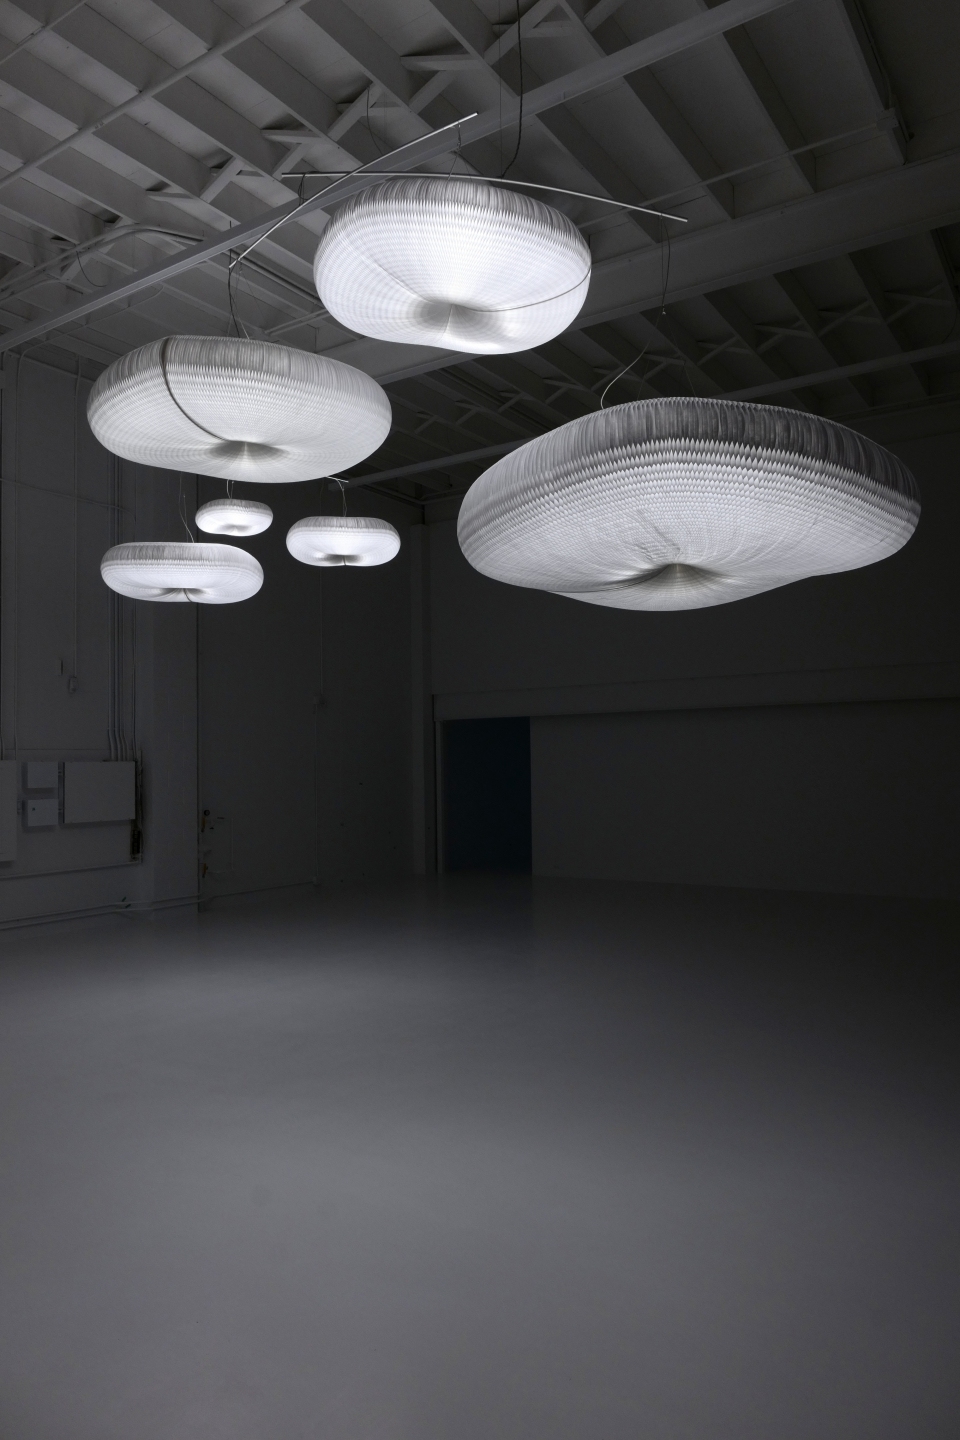 a mysterious canopy of cloud mobiles hang illuminated in the dark